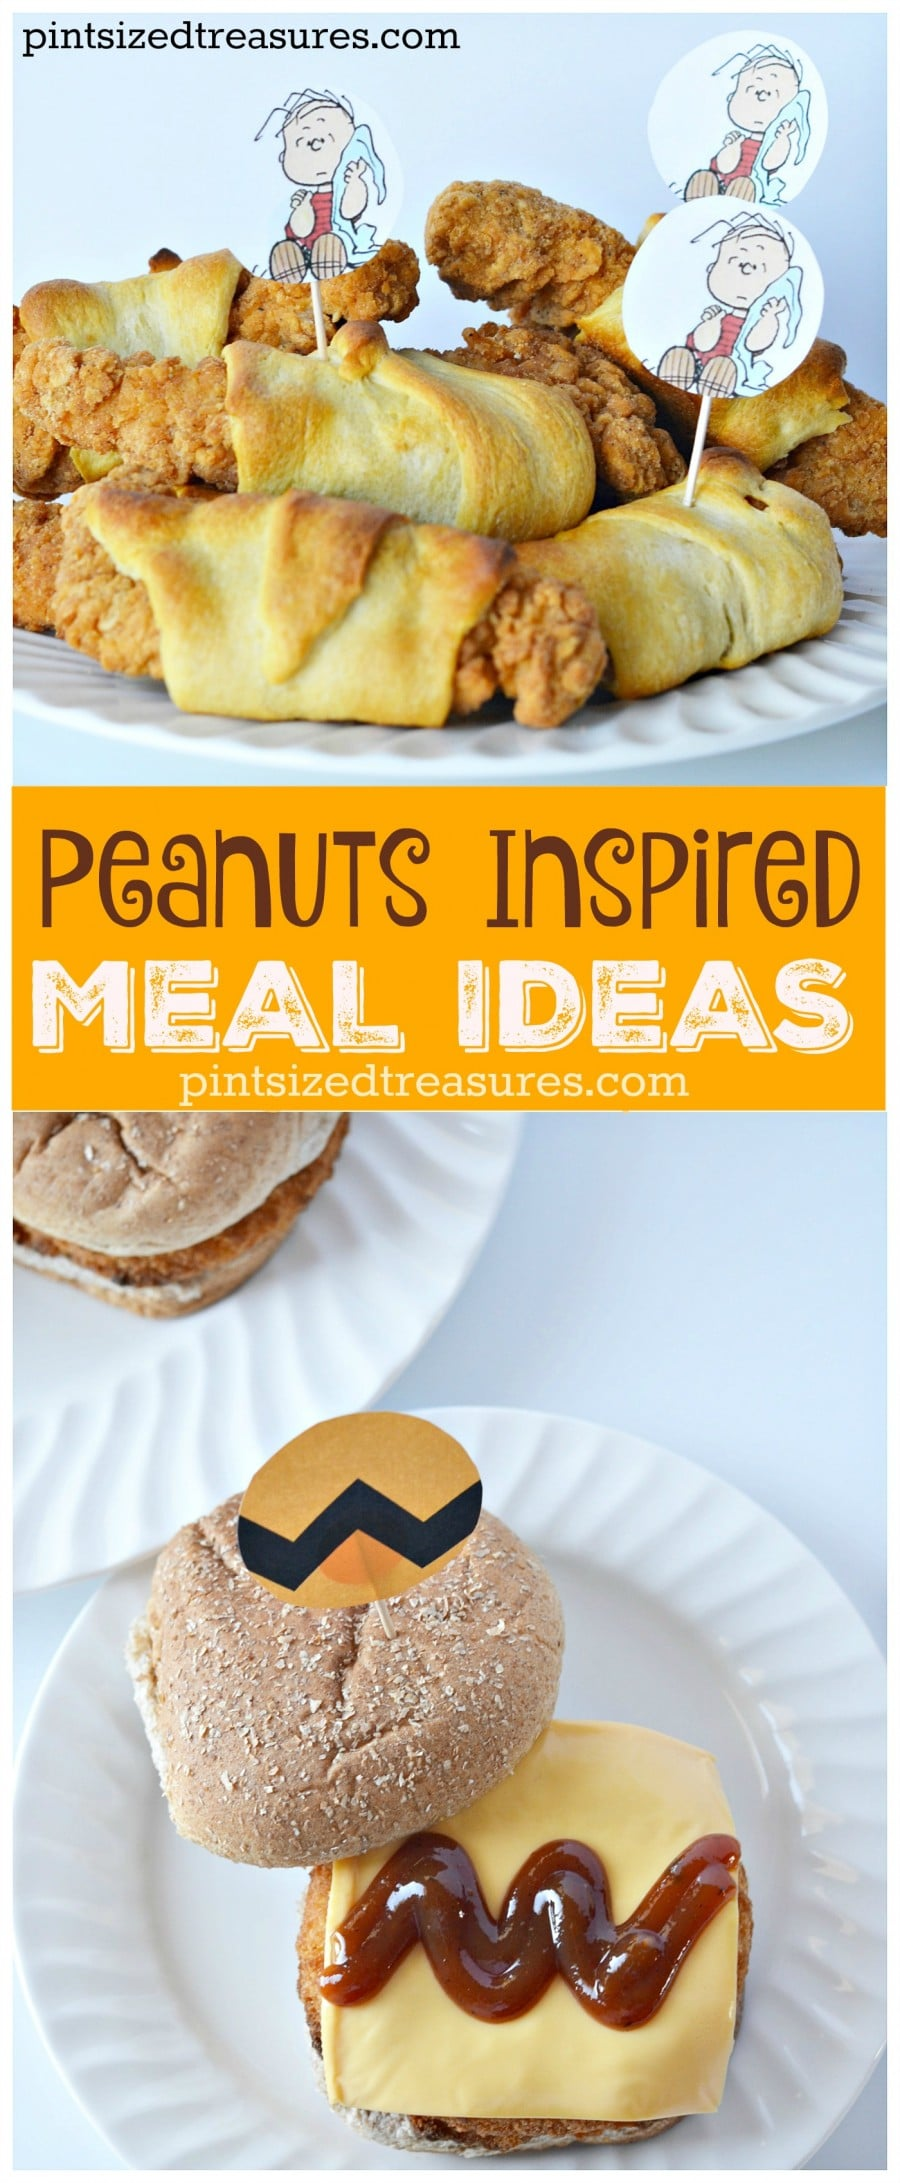 peanuts inspired meal ideas